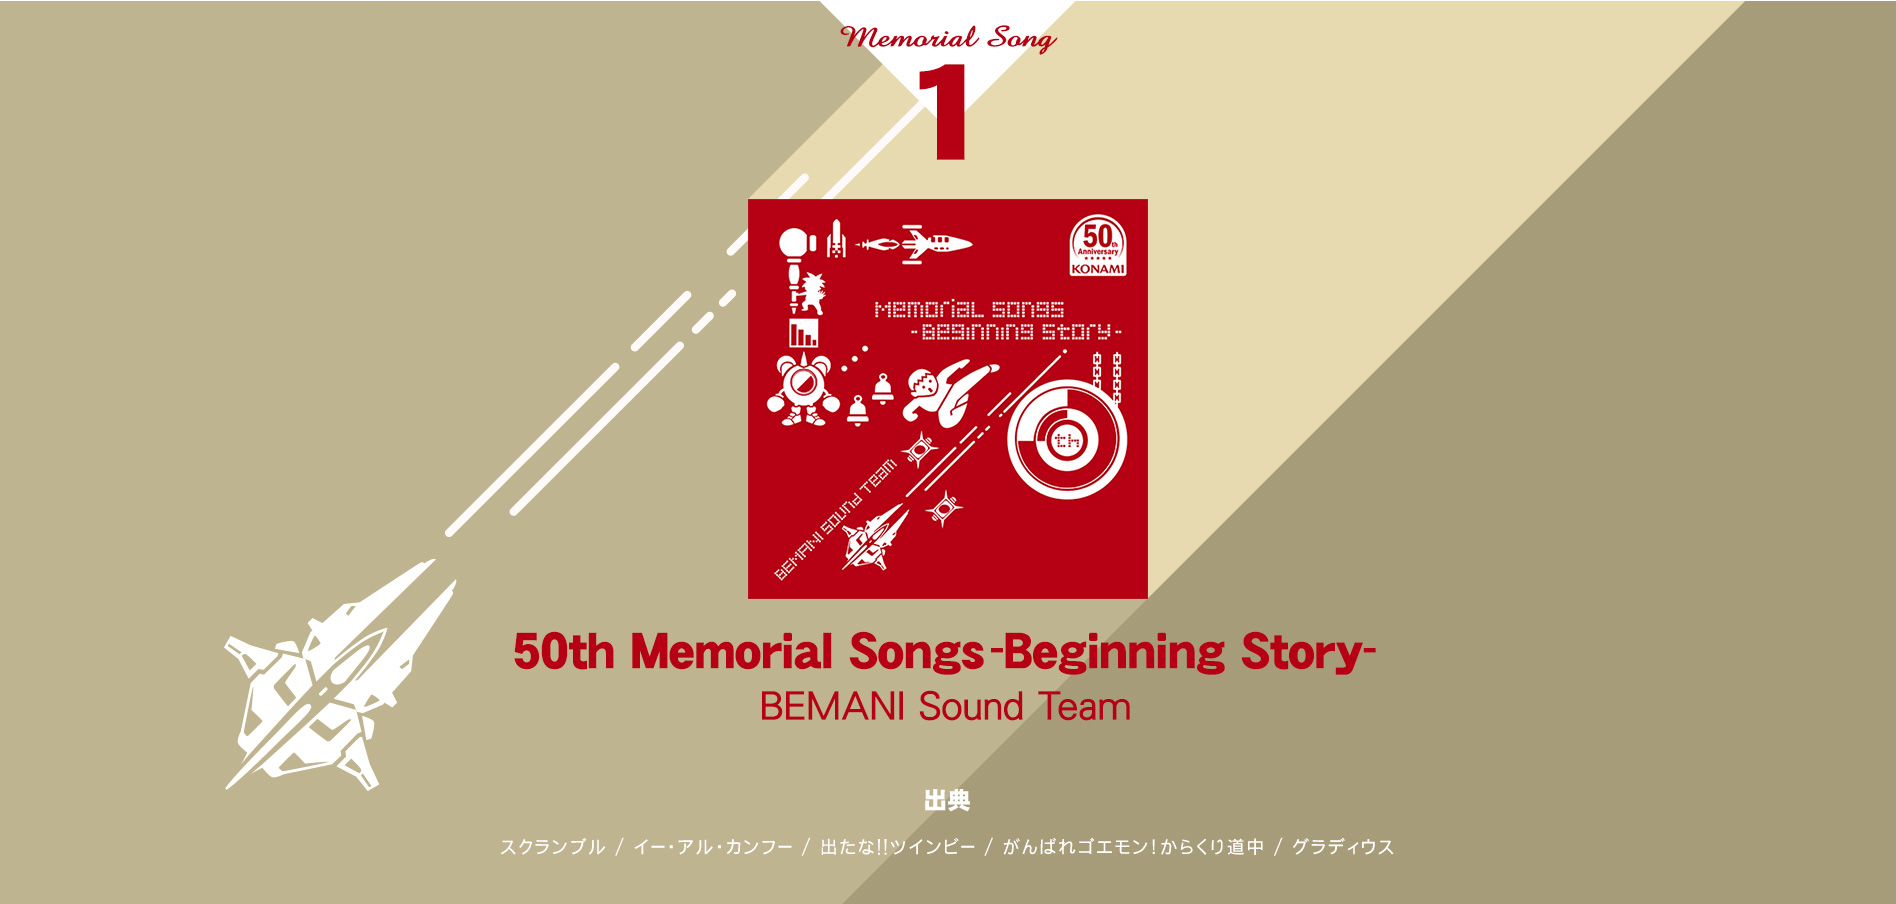 https://eacache.s.konaminet.jp/game/bemani/fansite/p/images/event/konami50th/song1_bg.jpg